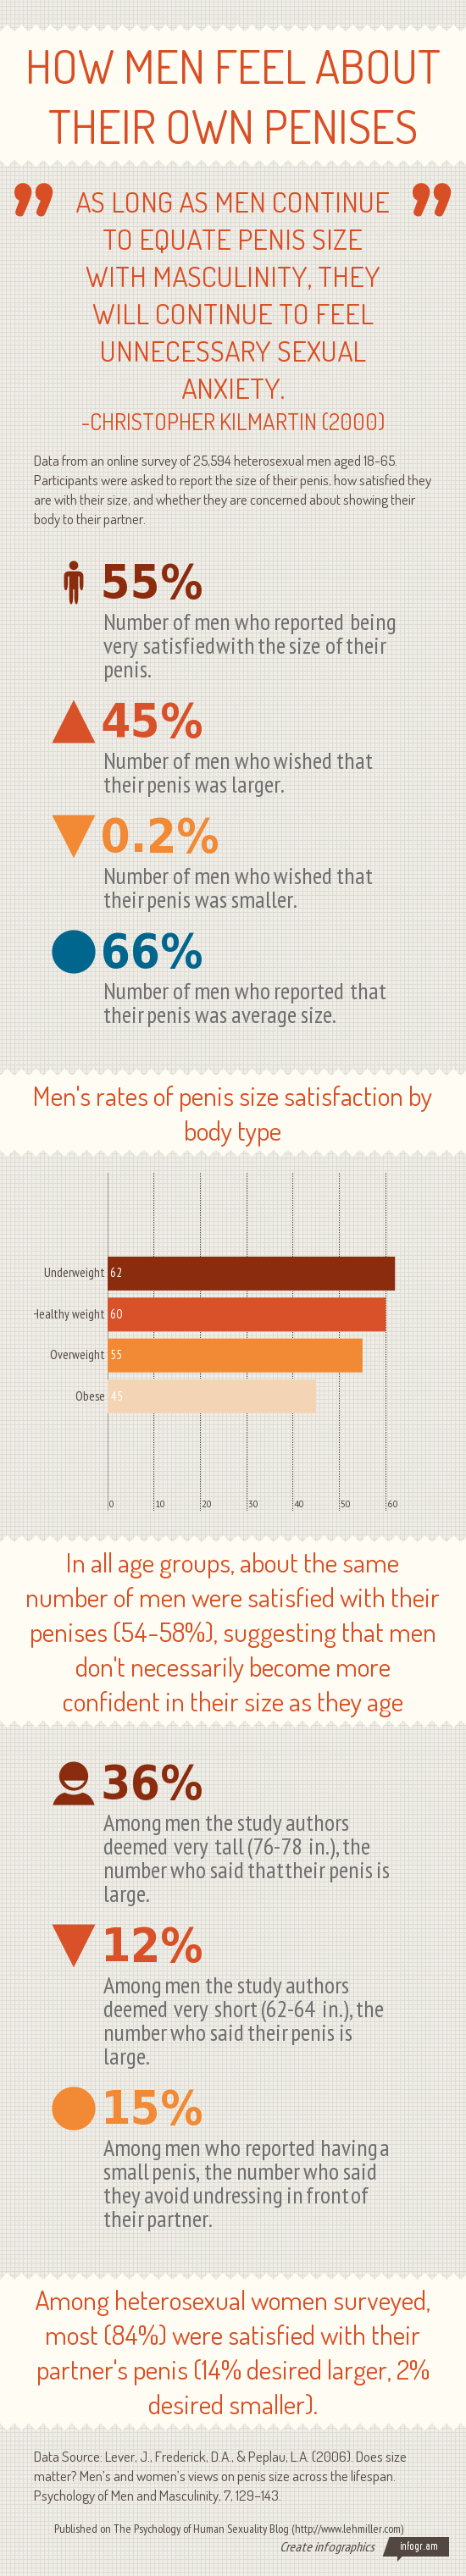 Men Who Weigh Less Like Their Penises More